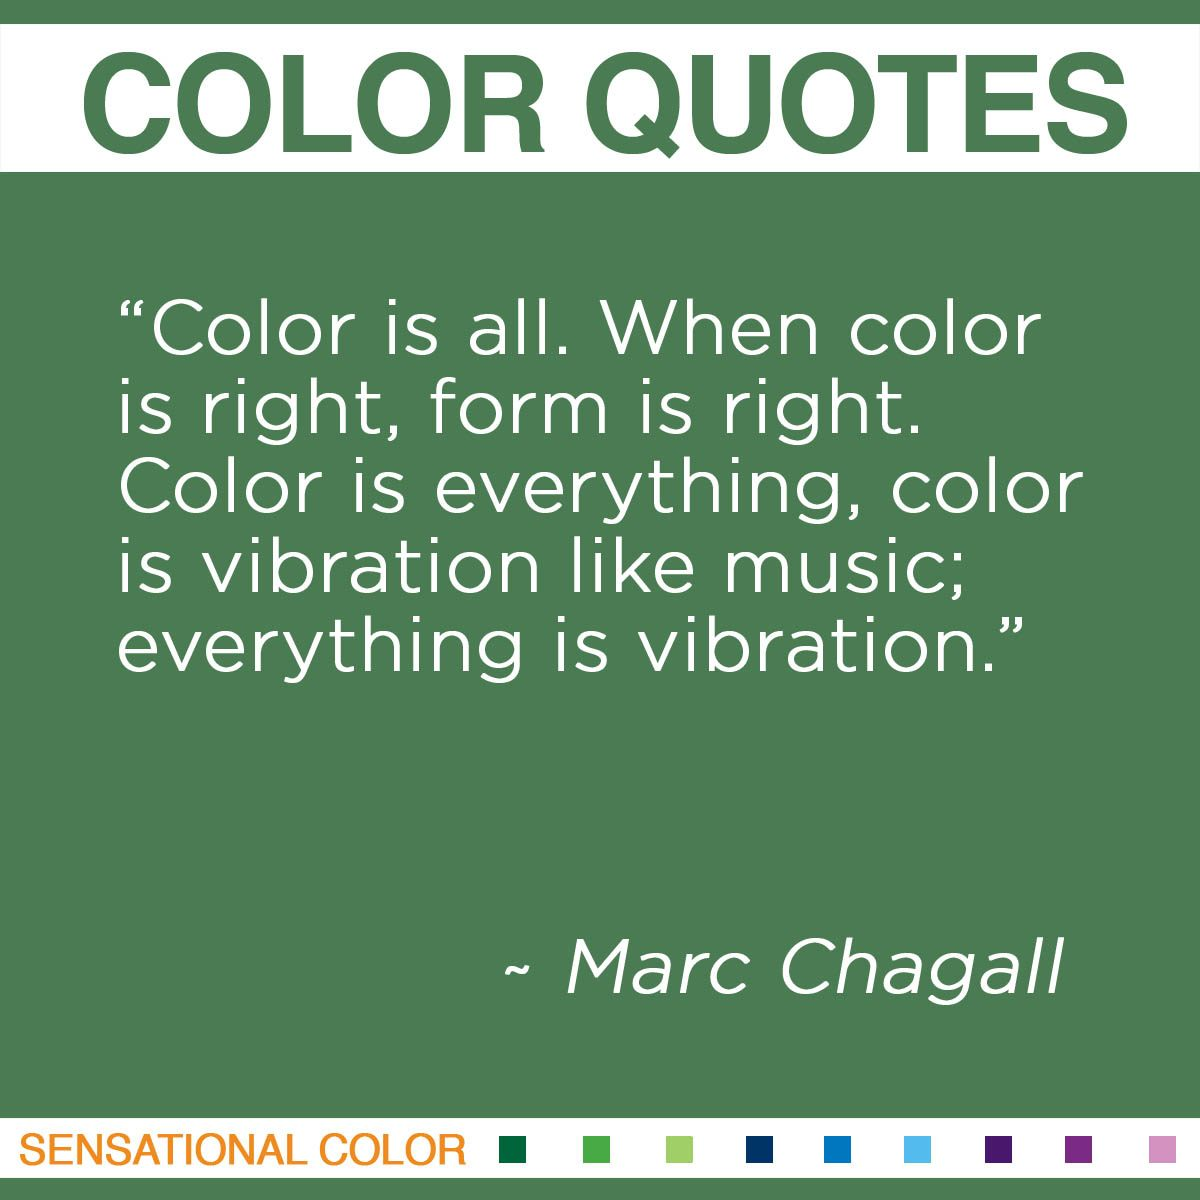 """Color is all. When color is right, form is right. Color is everything, color is vibration like music; everything is vibration."" - Marc Chagall"